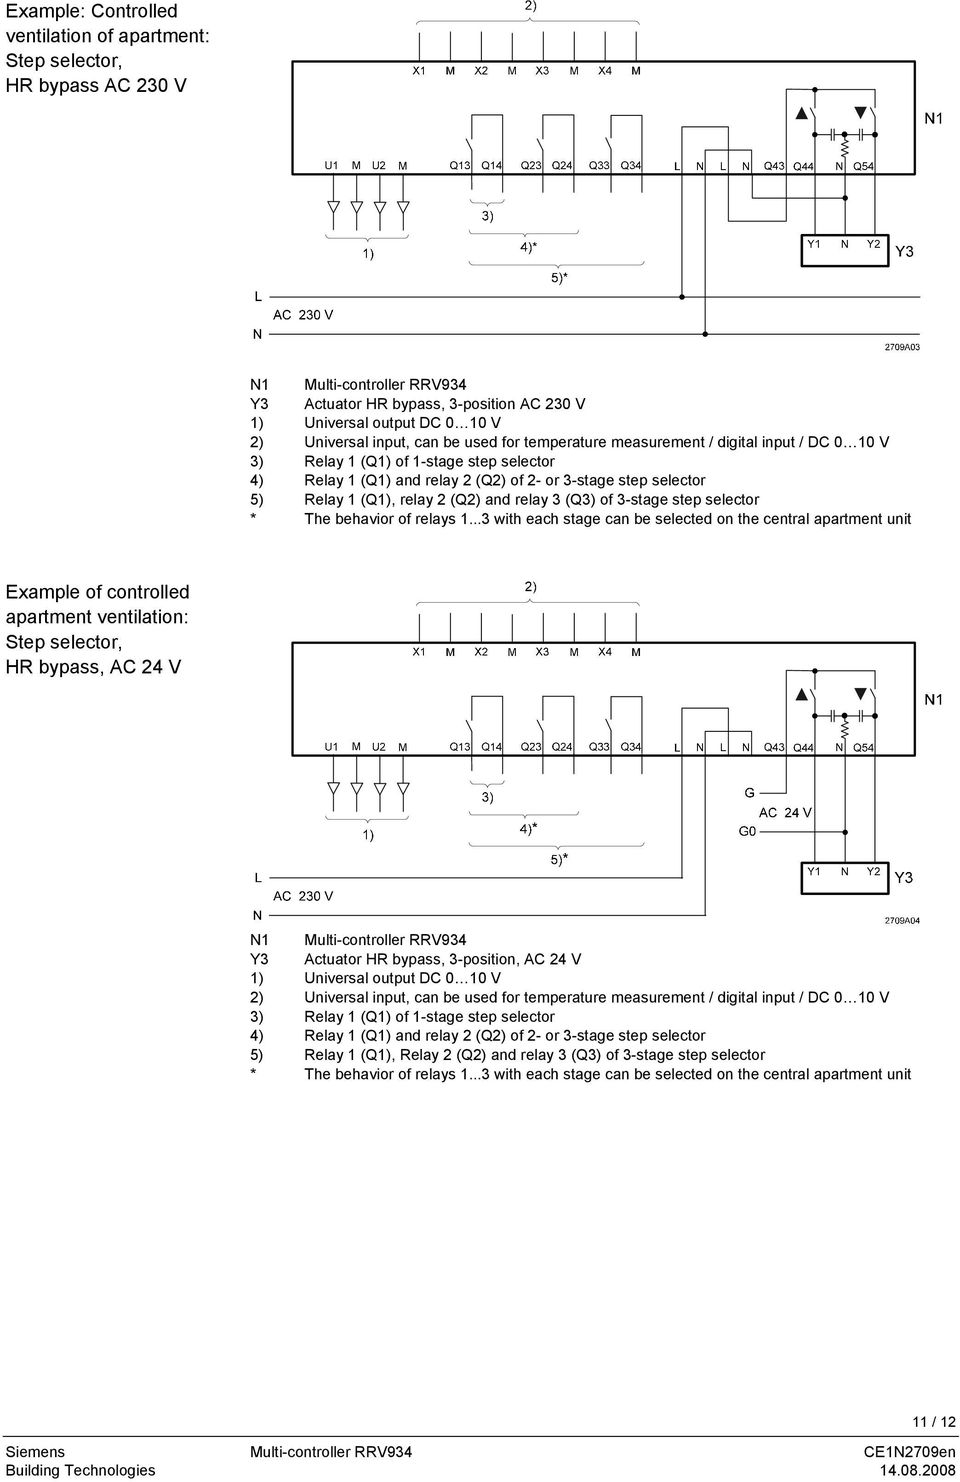 (Q2) and relay 3 (Q3) of 3-stage step selector * The behavior of relays 1.